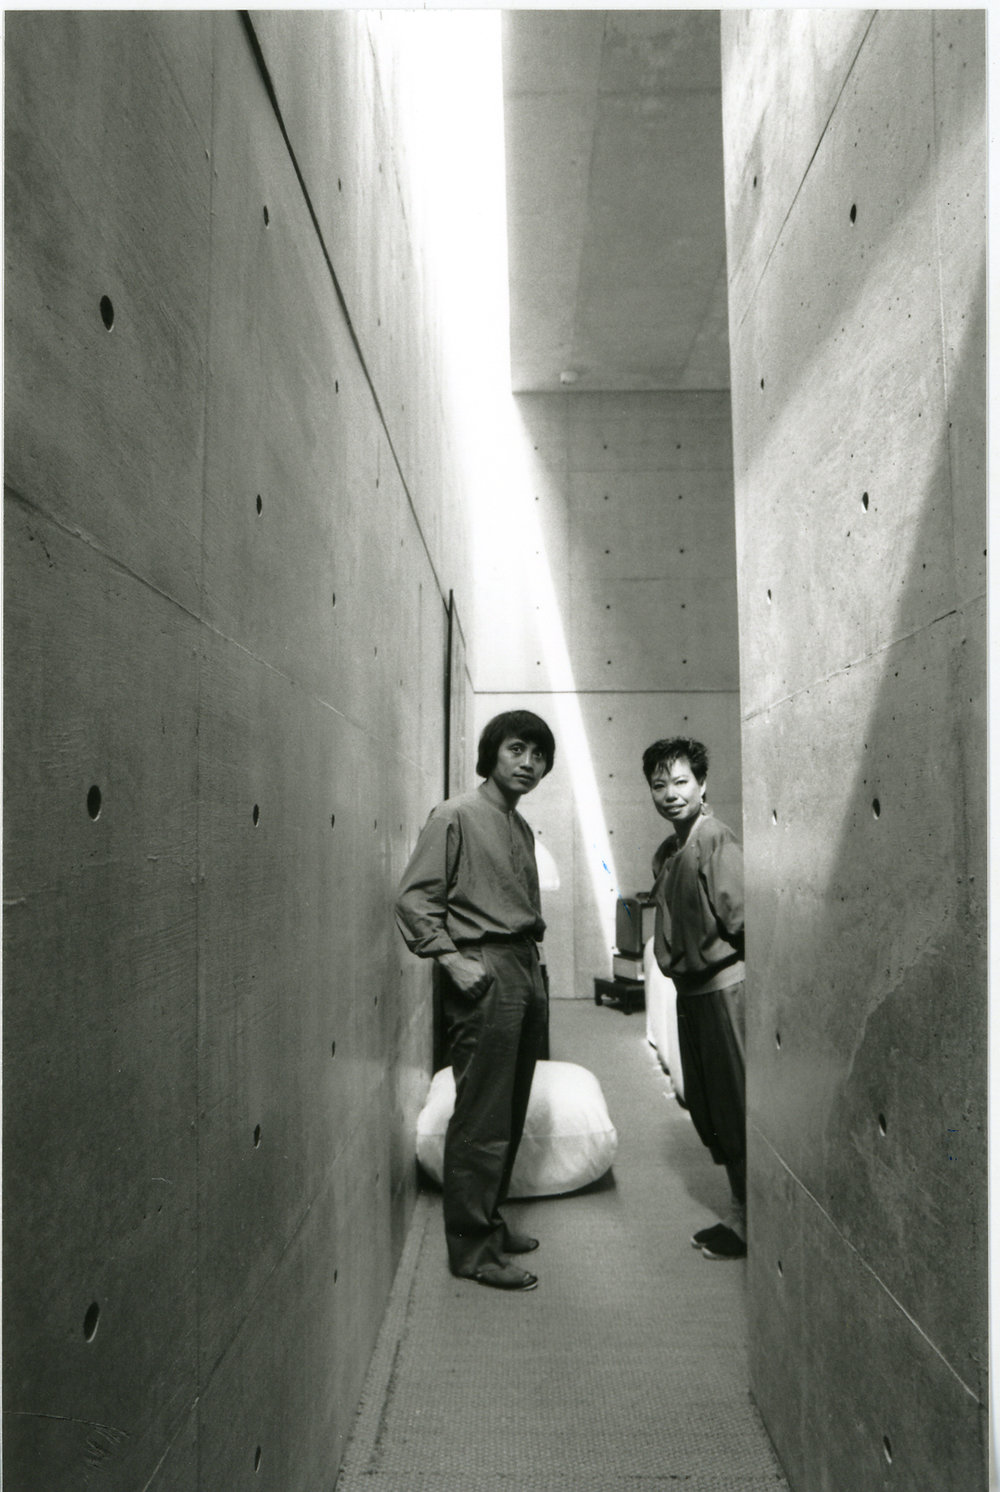 Tadao Ando and Hiroko Koshino in the Koshino House, the home he built for her. Courtesy Tadao Ando Architect & Associates.